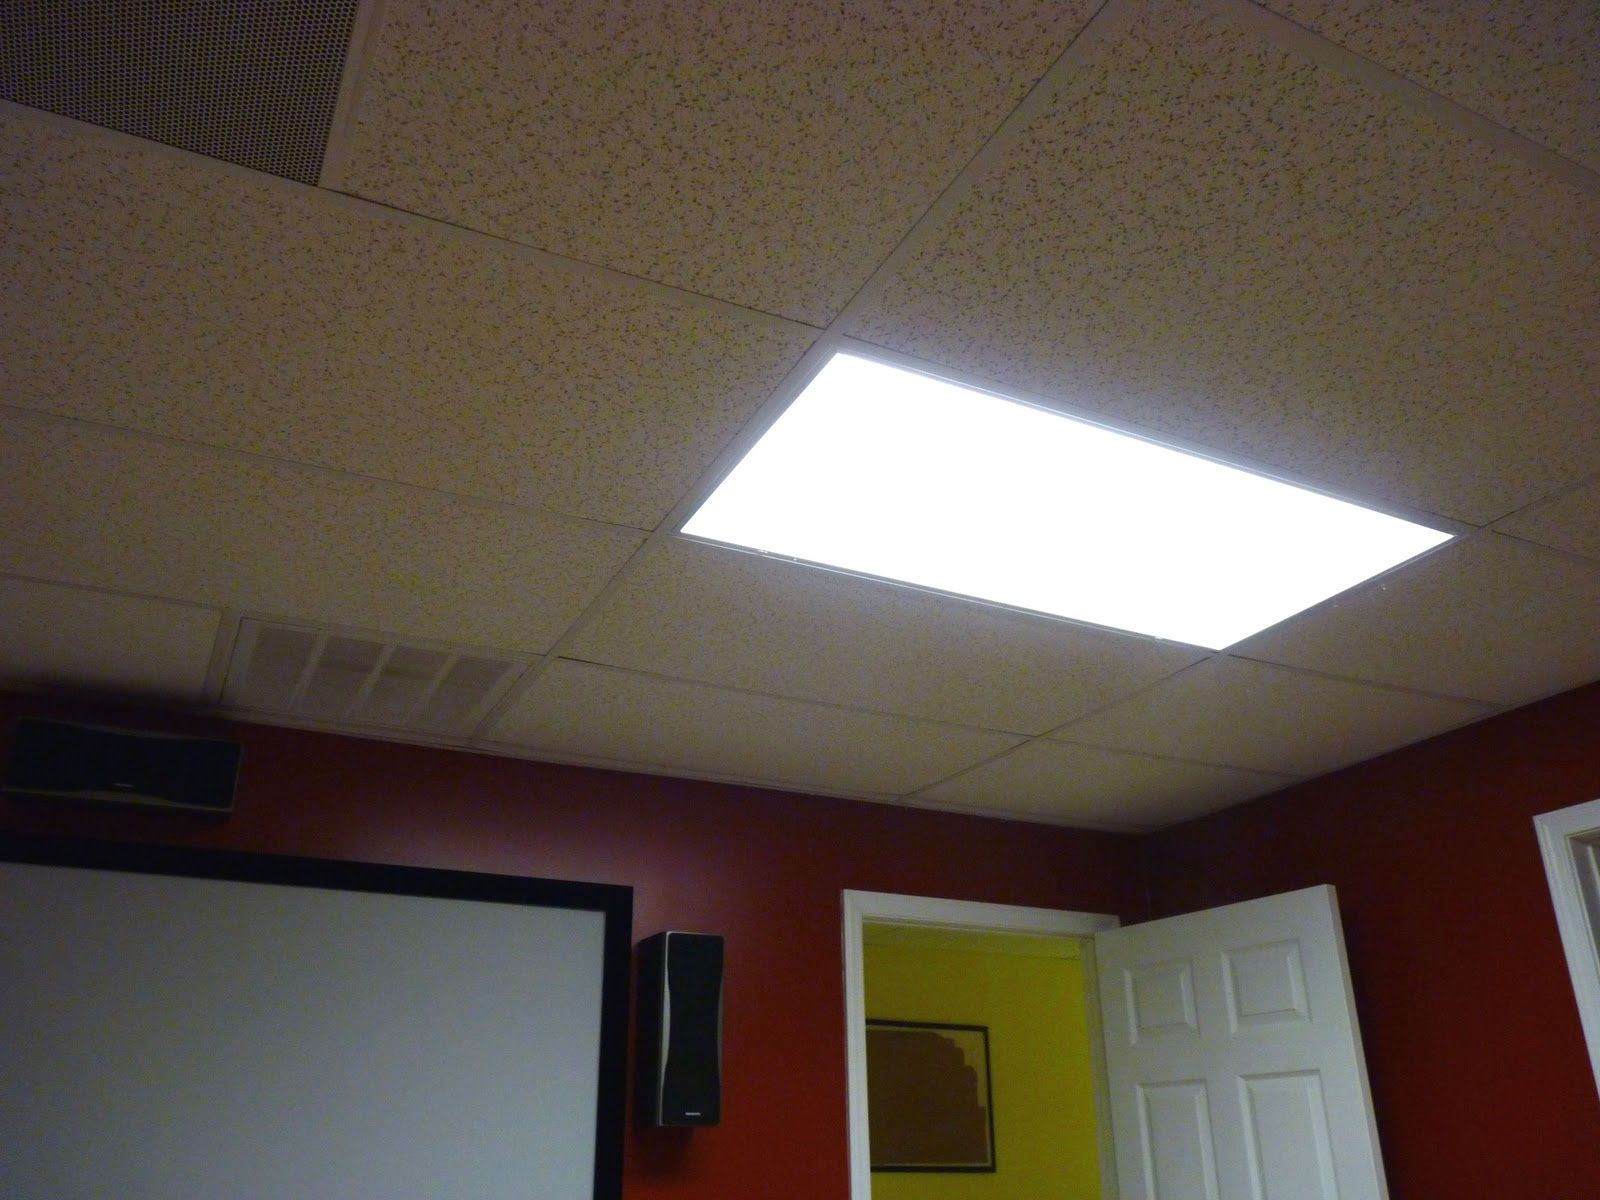 led pinterest lighting on ceilings images lights linear light for ceiling best suspended inside